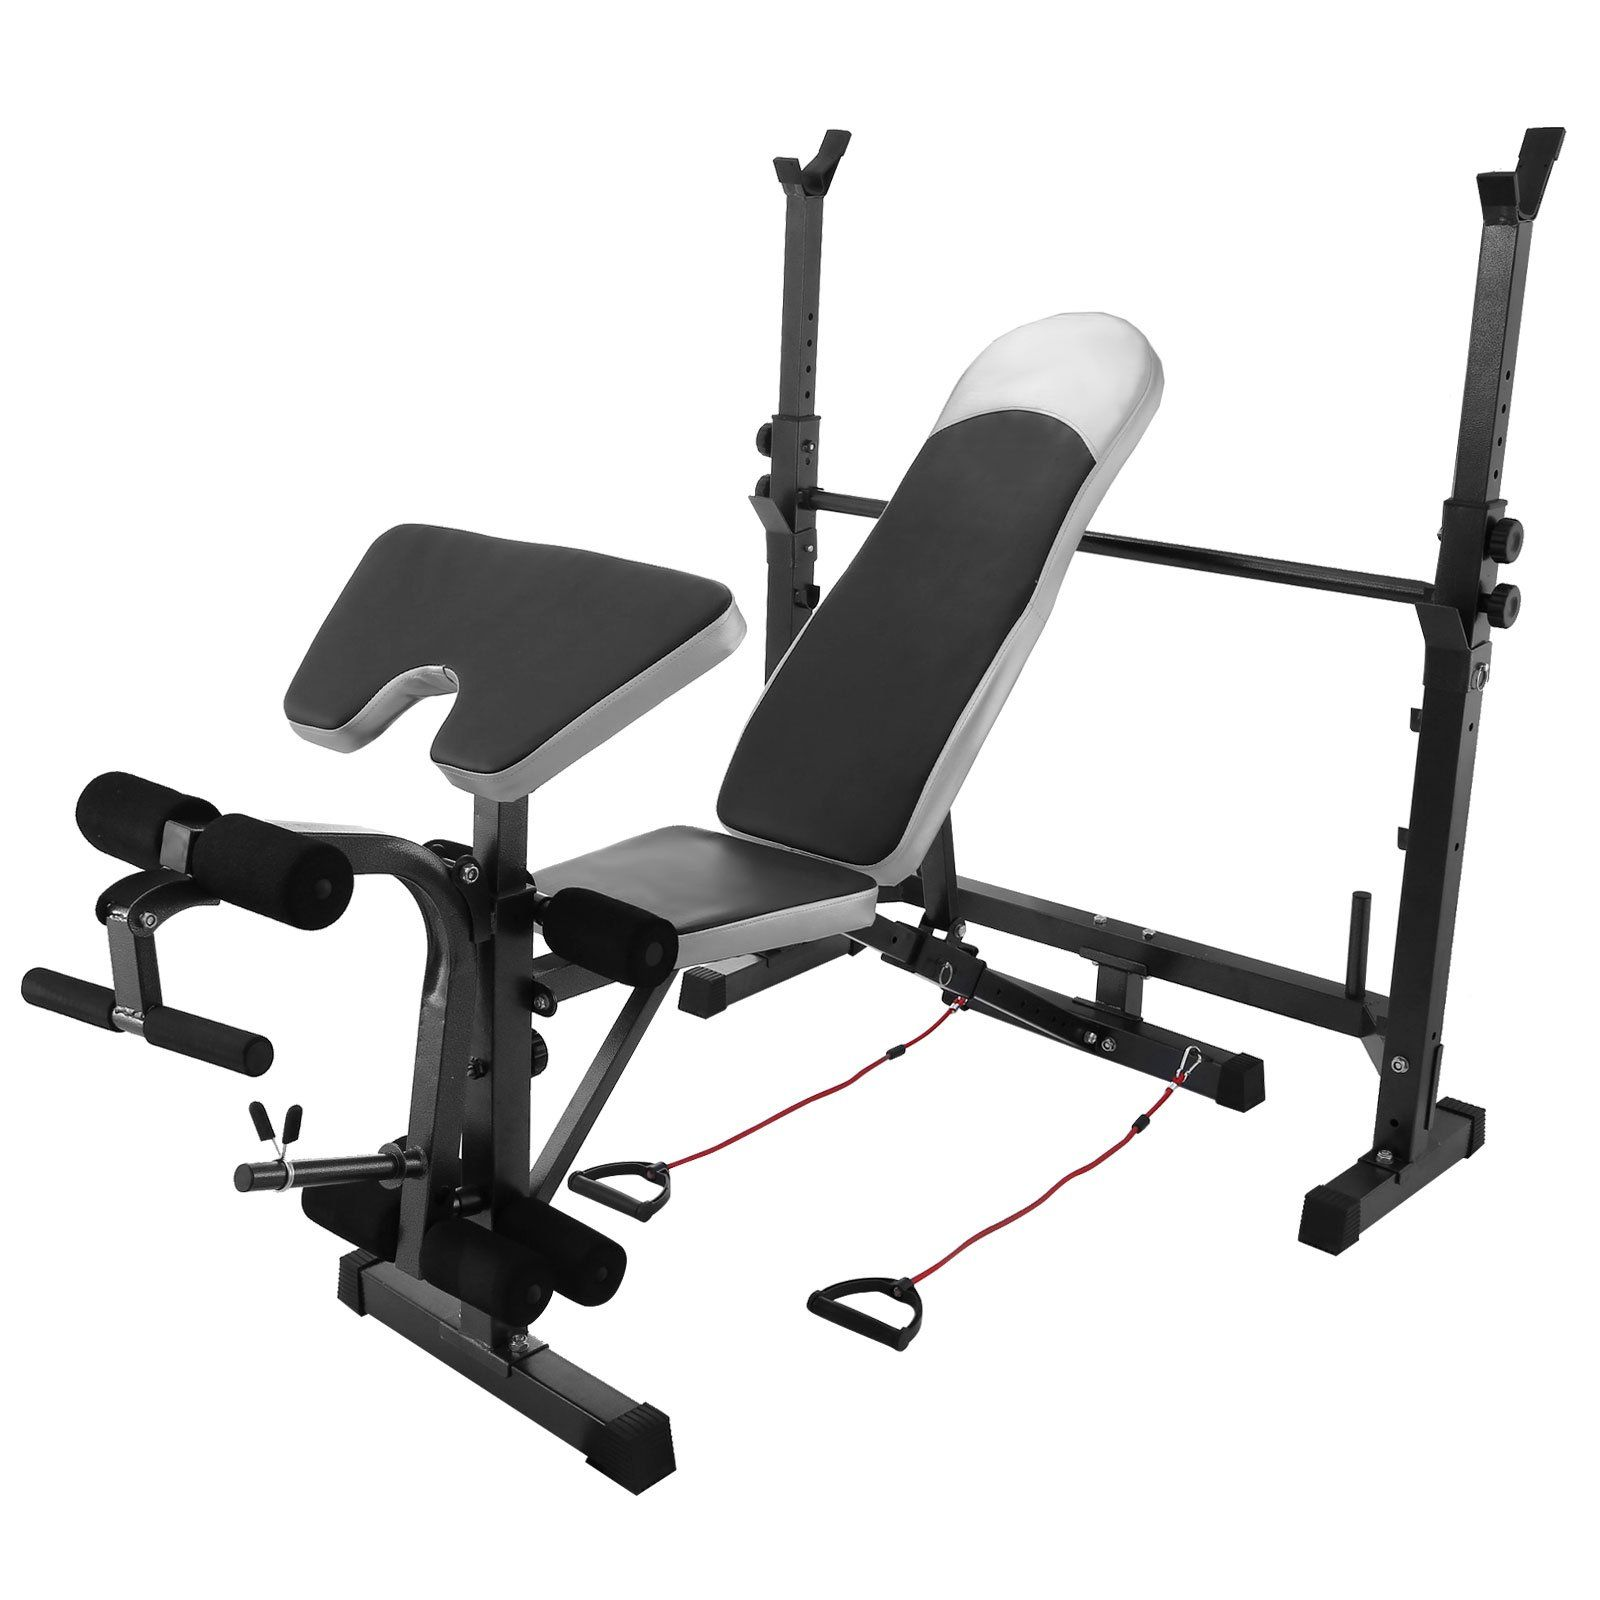 Bestequip Multi Station Weight Bench Adjustable Workout Bench With Leg Extension Incline Flat D Weight Benches Adjustable Weight Bench Adjustable Workout Bench